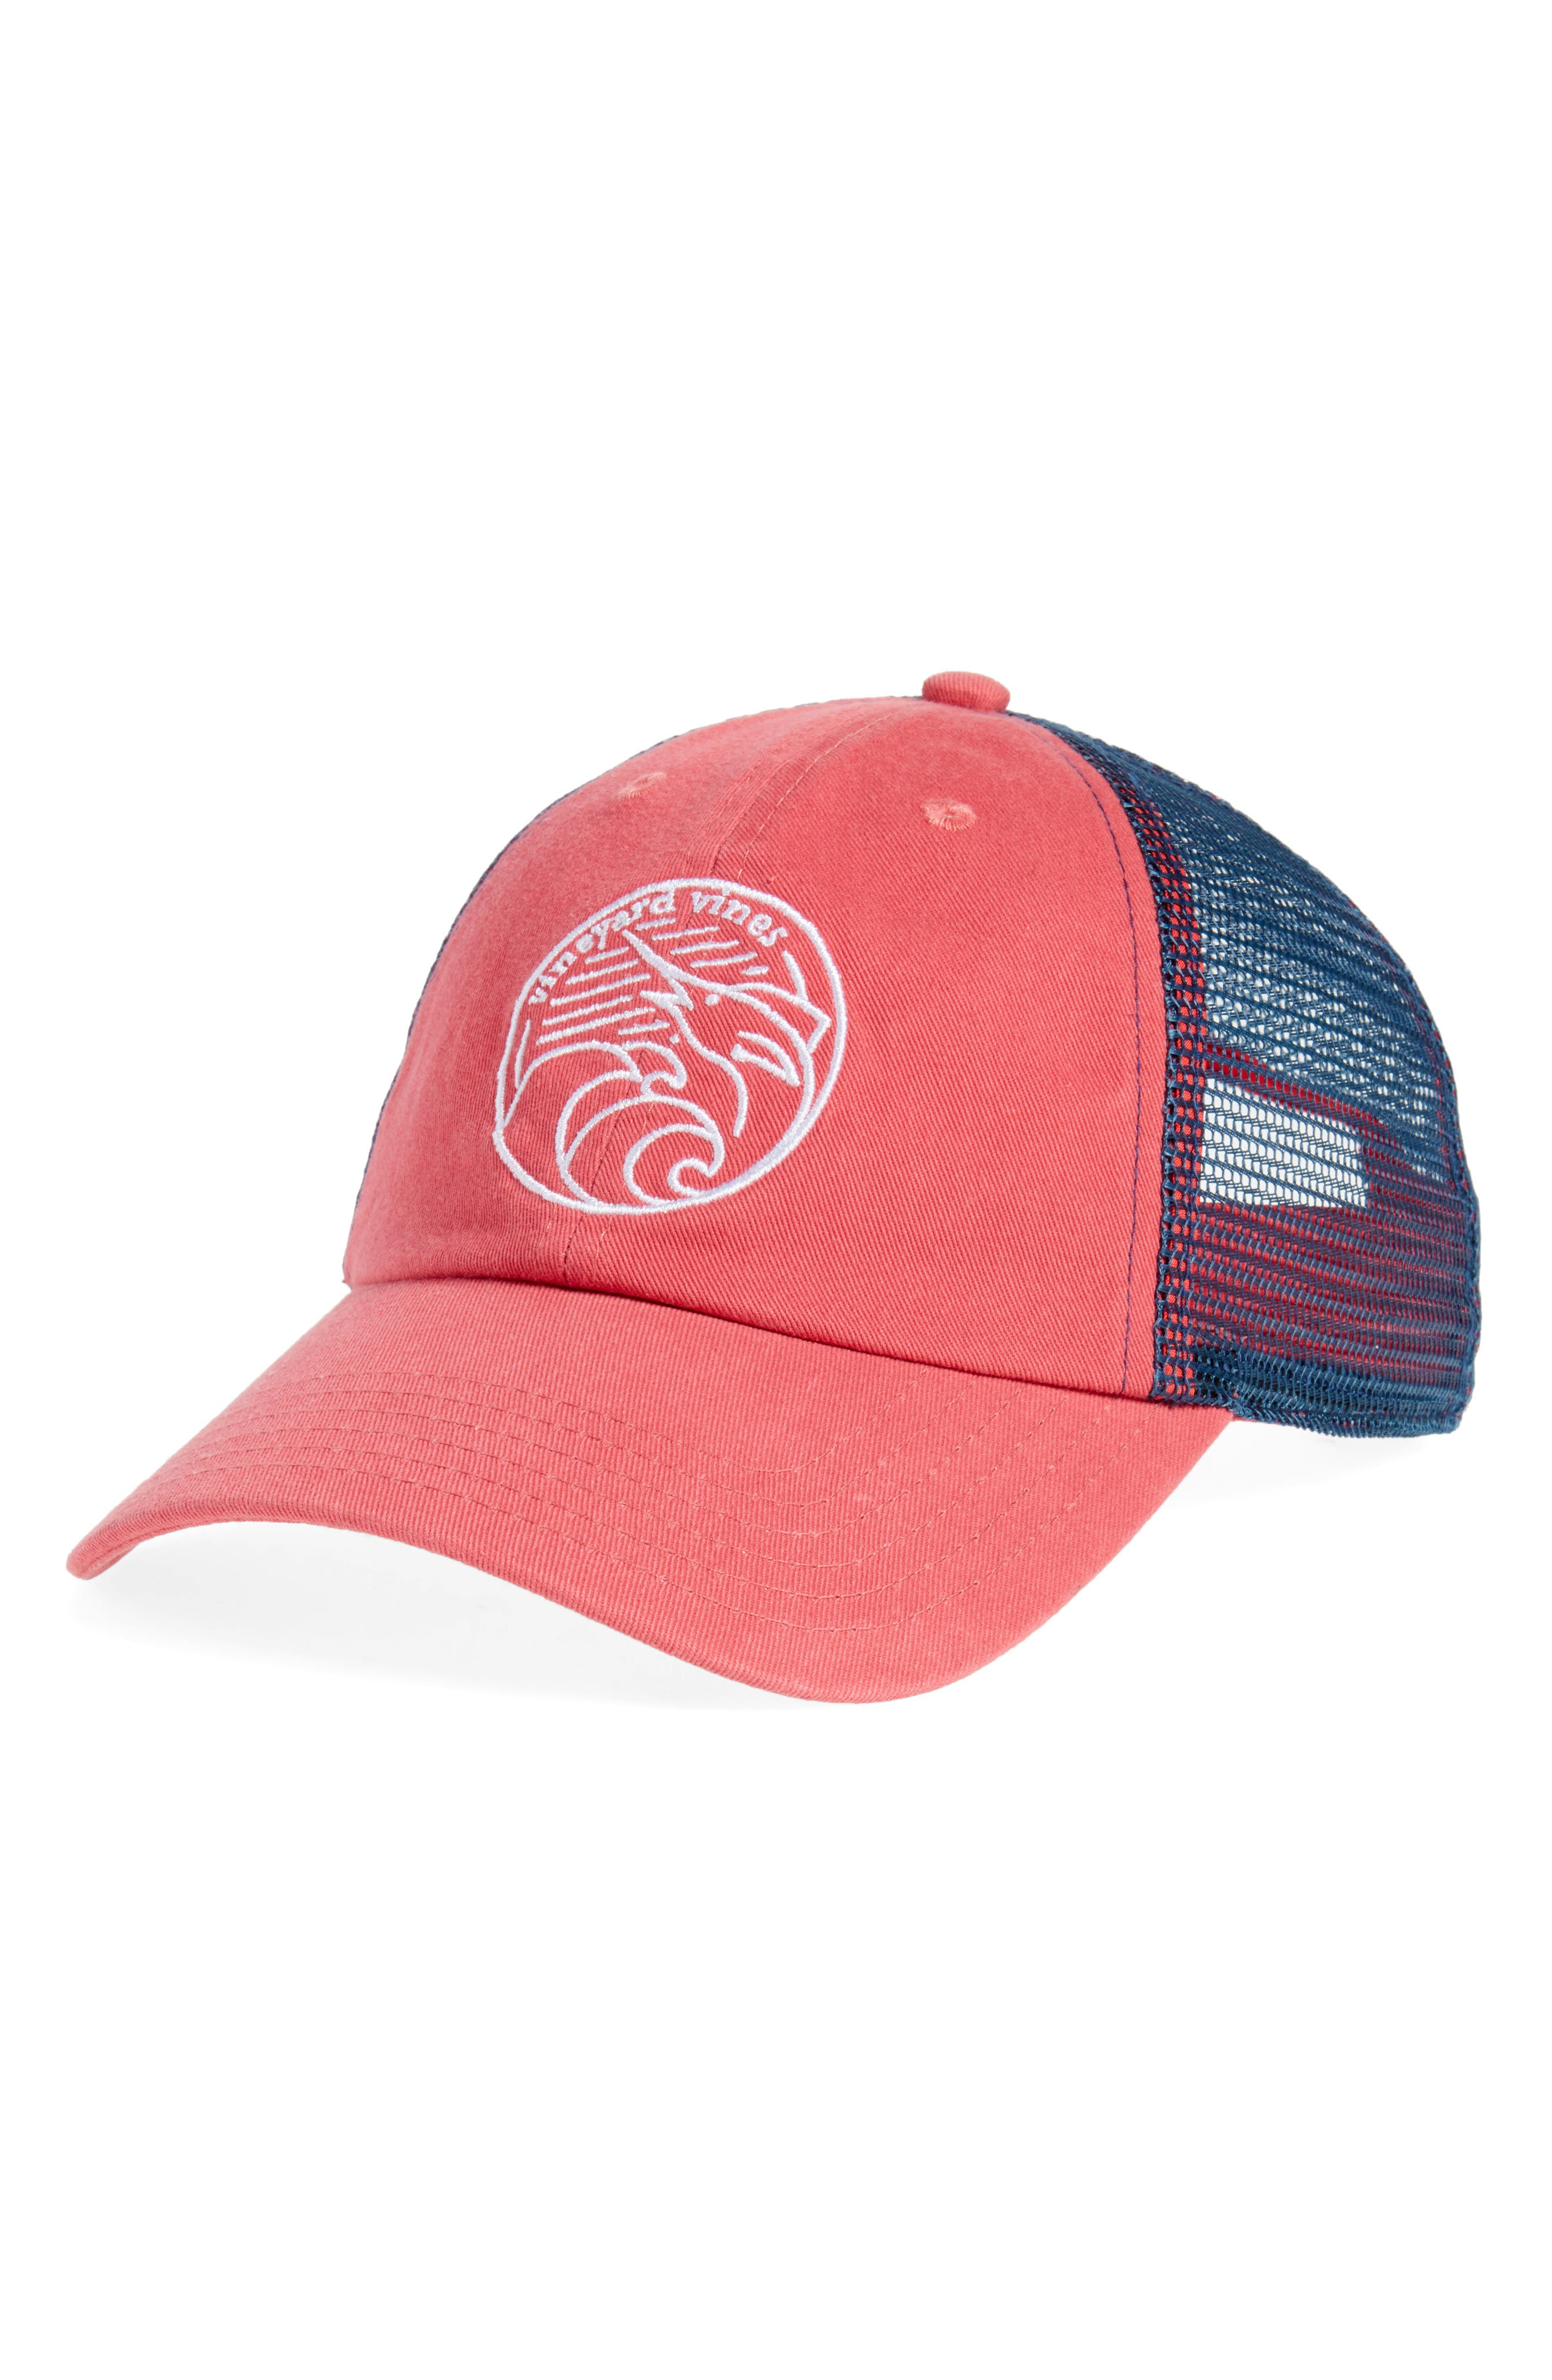 Low Pro Marlin Trucker Cap,                         Main,                         color, 628